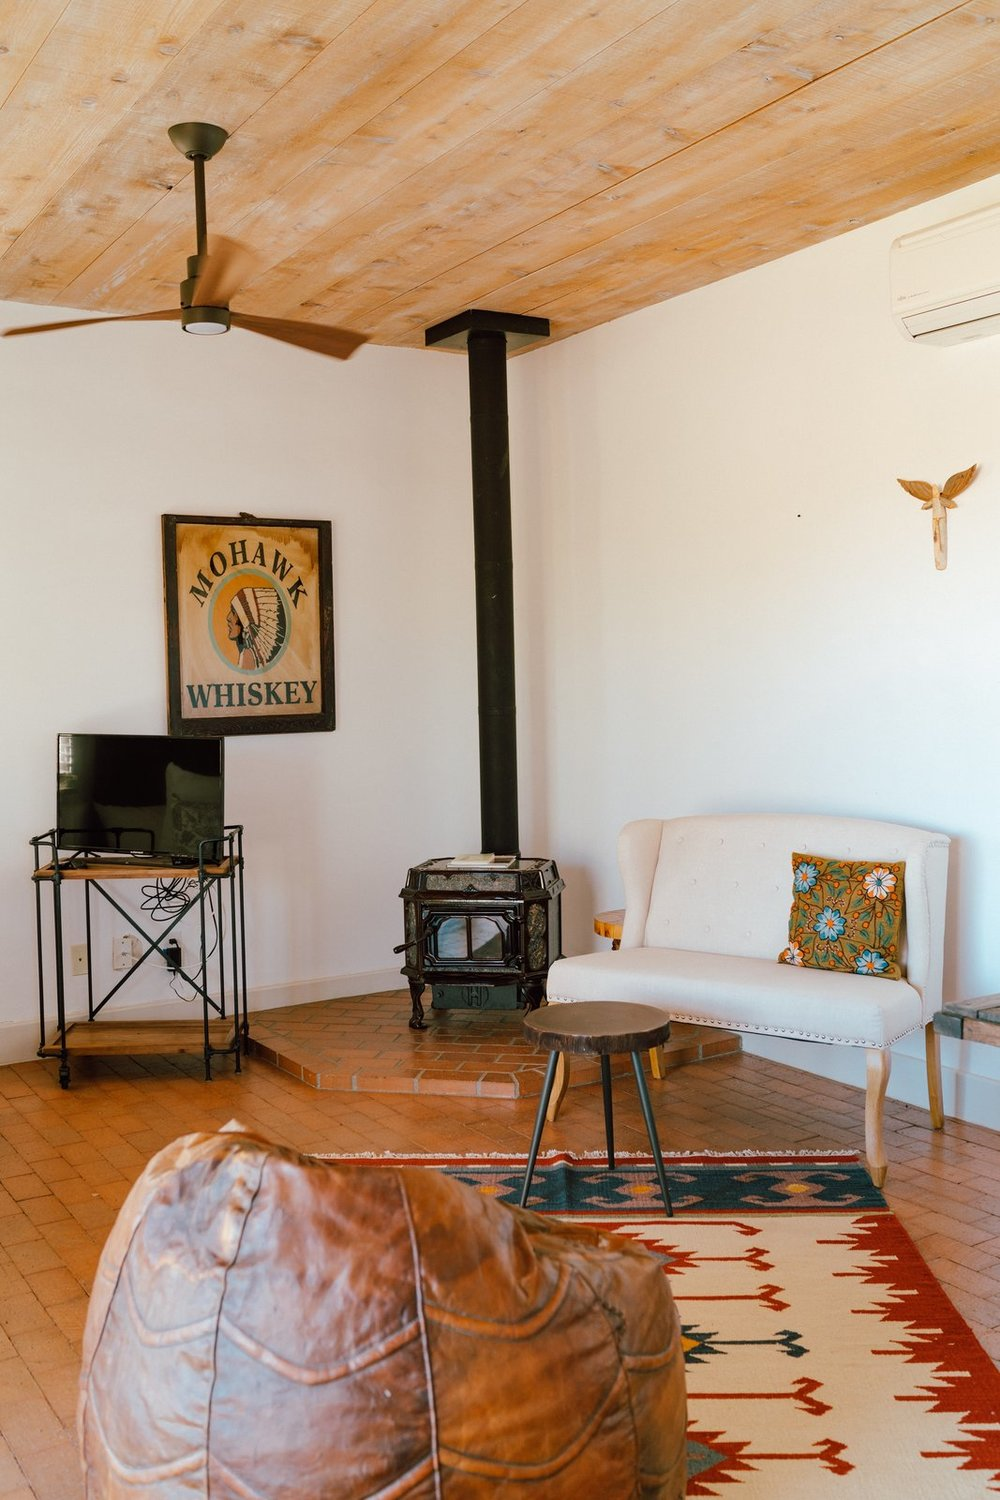 The casita offers a cozy escape for guests. (Tim Melideo)